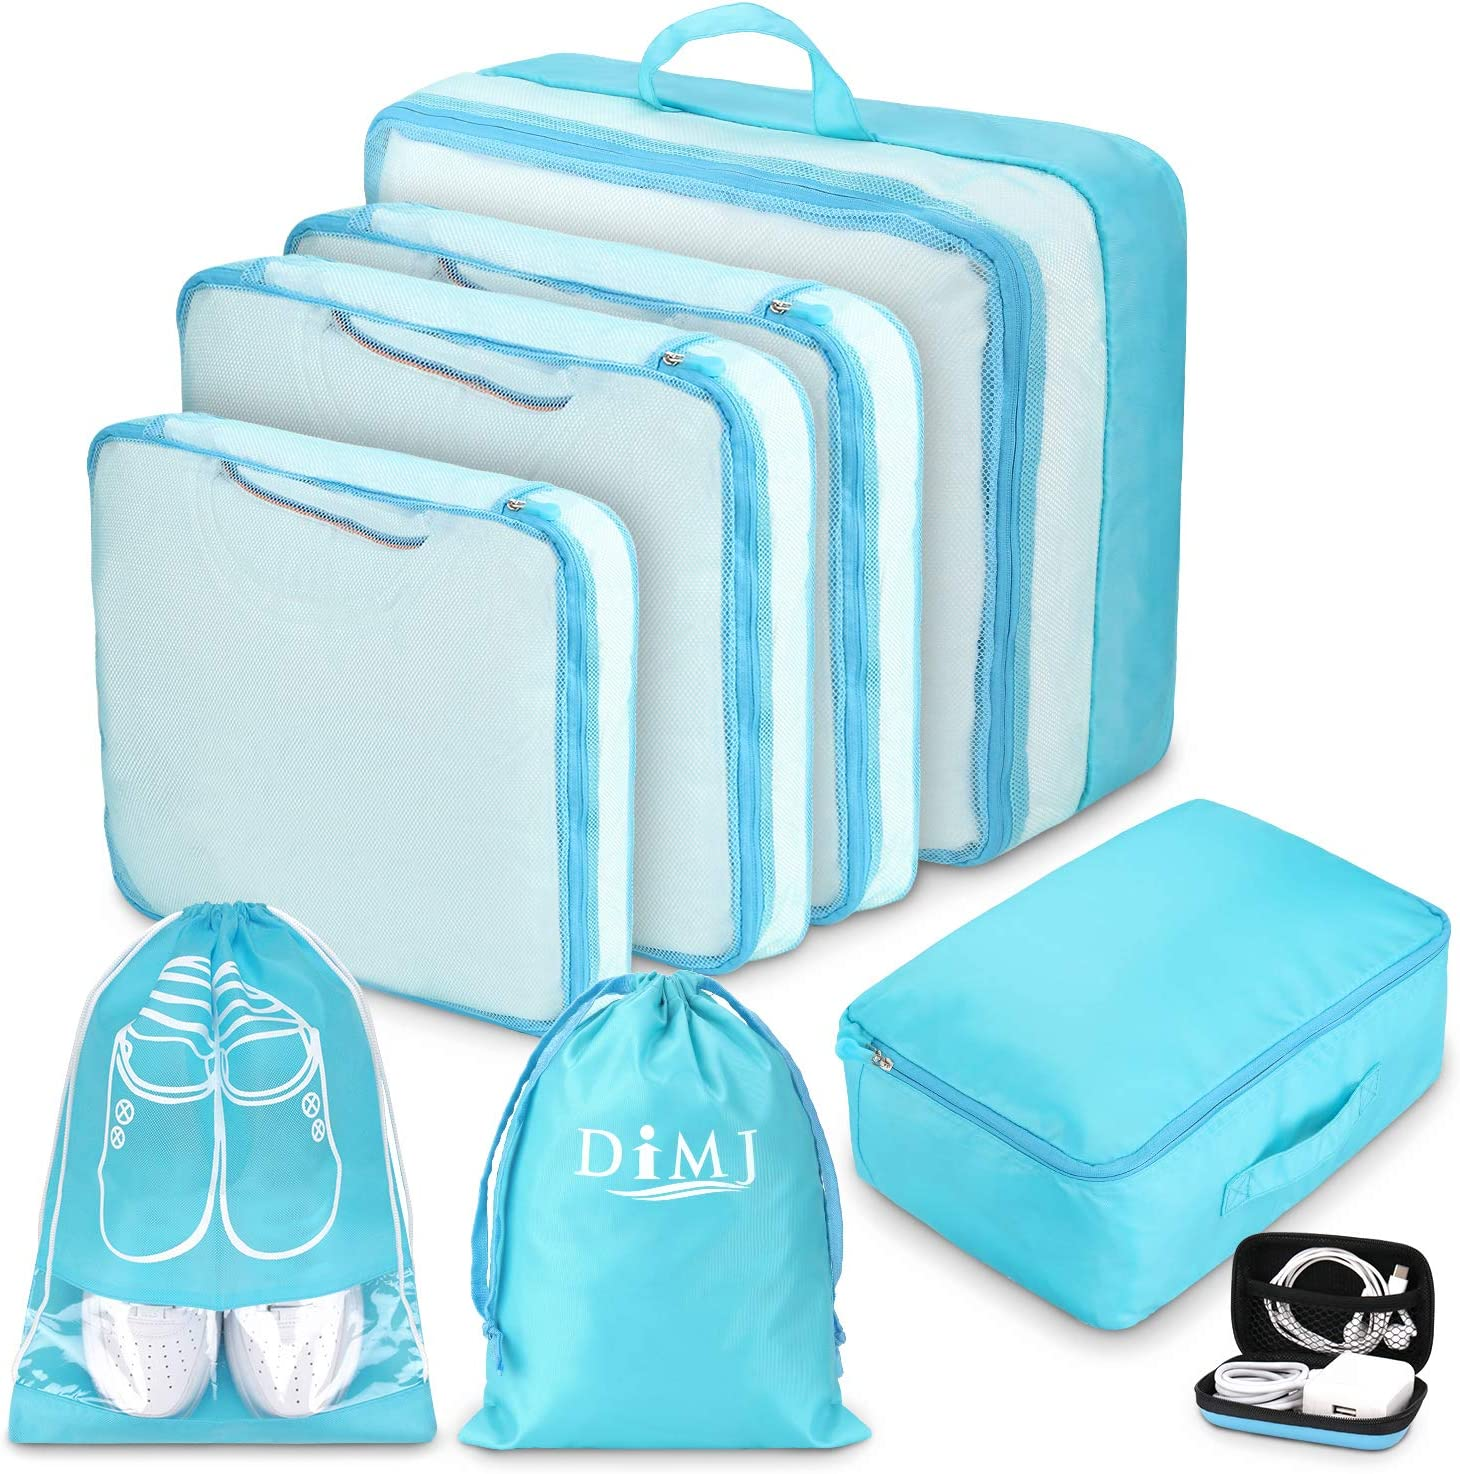 Packing Cubes for Travel, 8Pcs Travel Cubes Set Foldable Suitcase Organizer Lightweight Luggage Storage Bag (Blue) : Clothing, Shoes & Jewelry